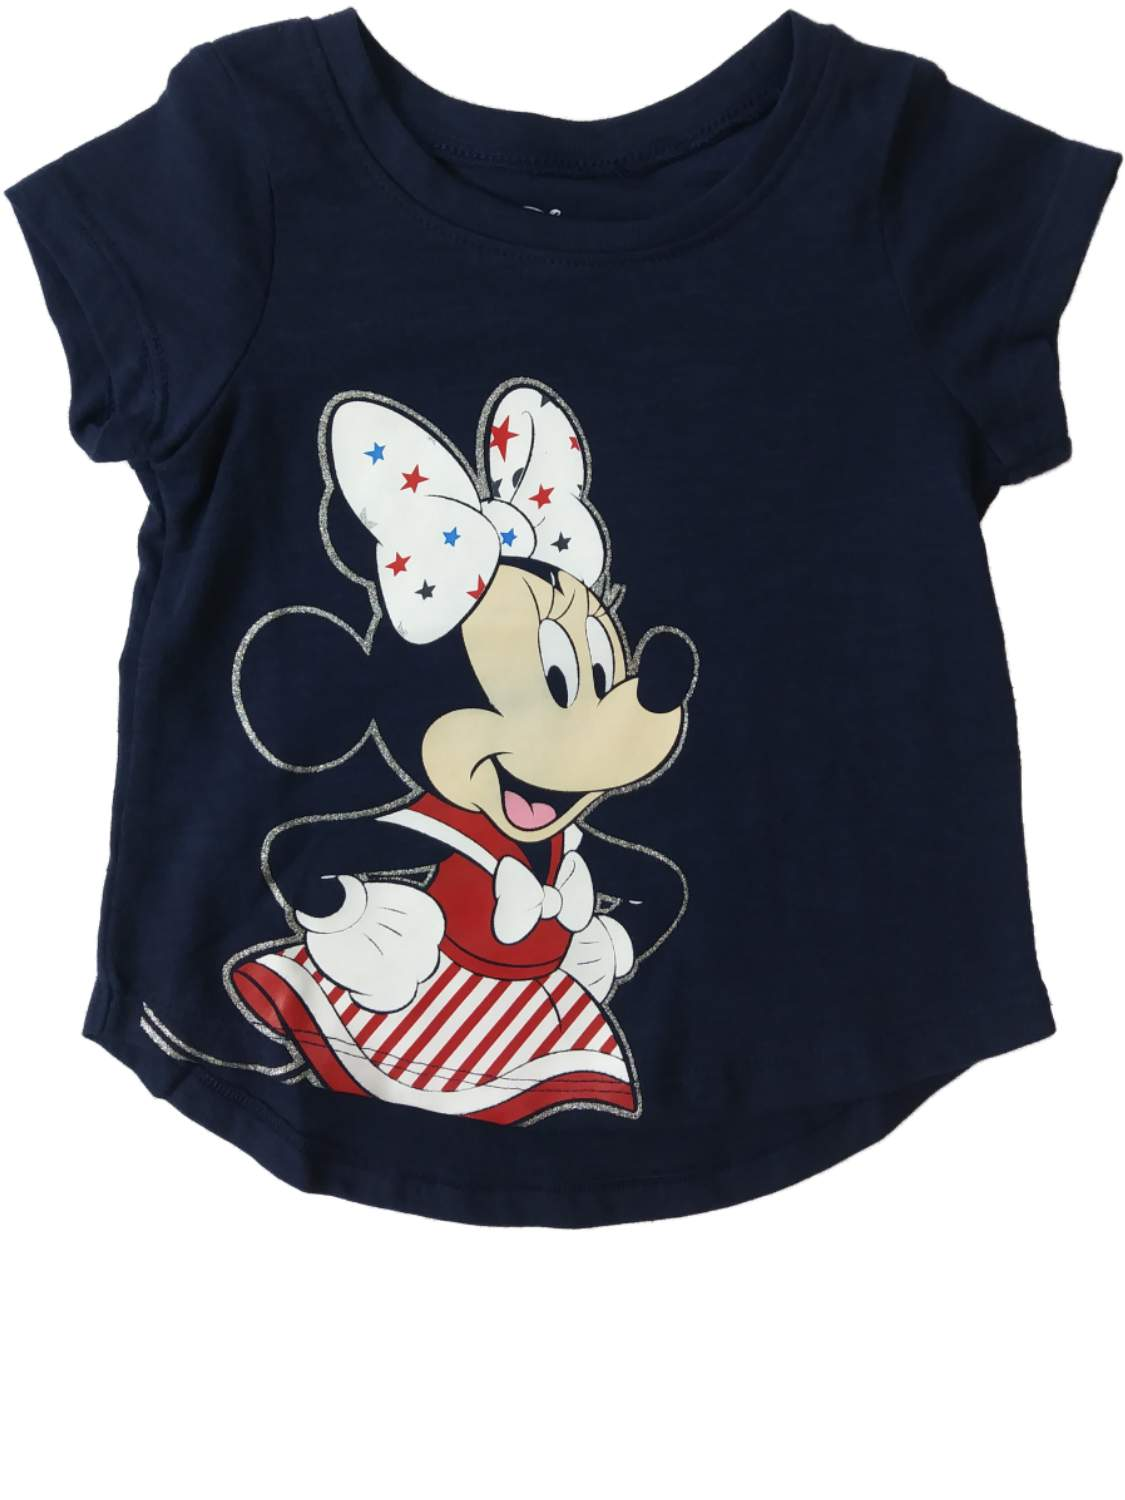 Infant & Toddler Girls Disney Minnie Mouse Blue USA Patriotic Glitter Tee Shirt